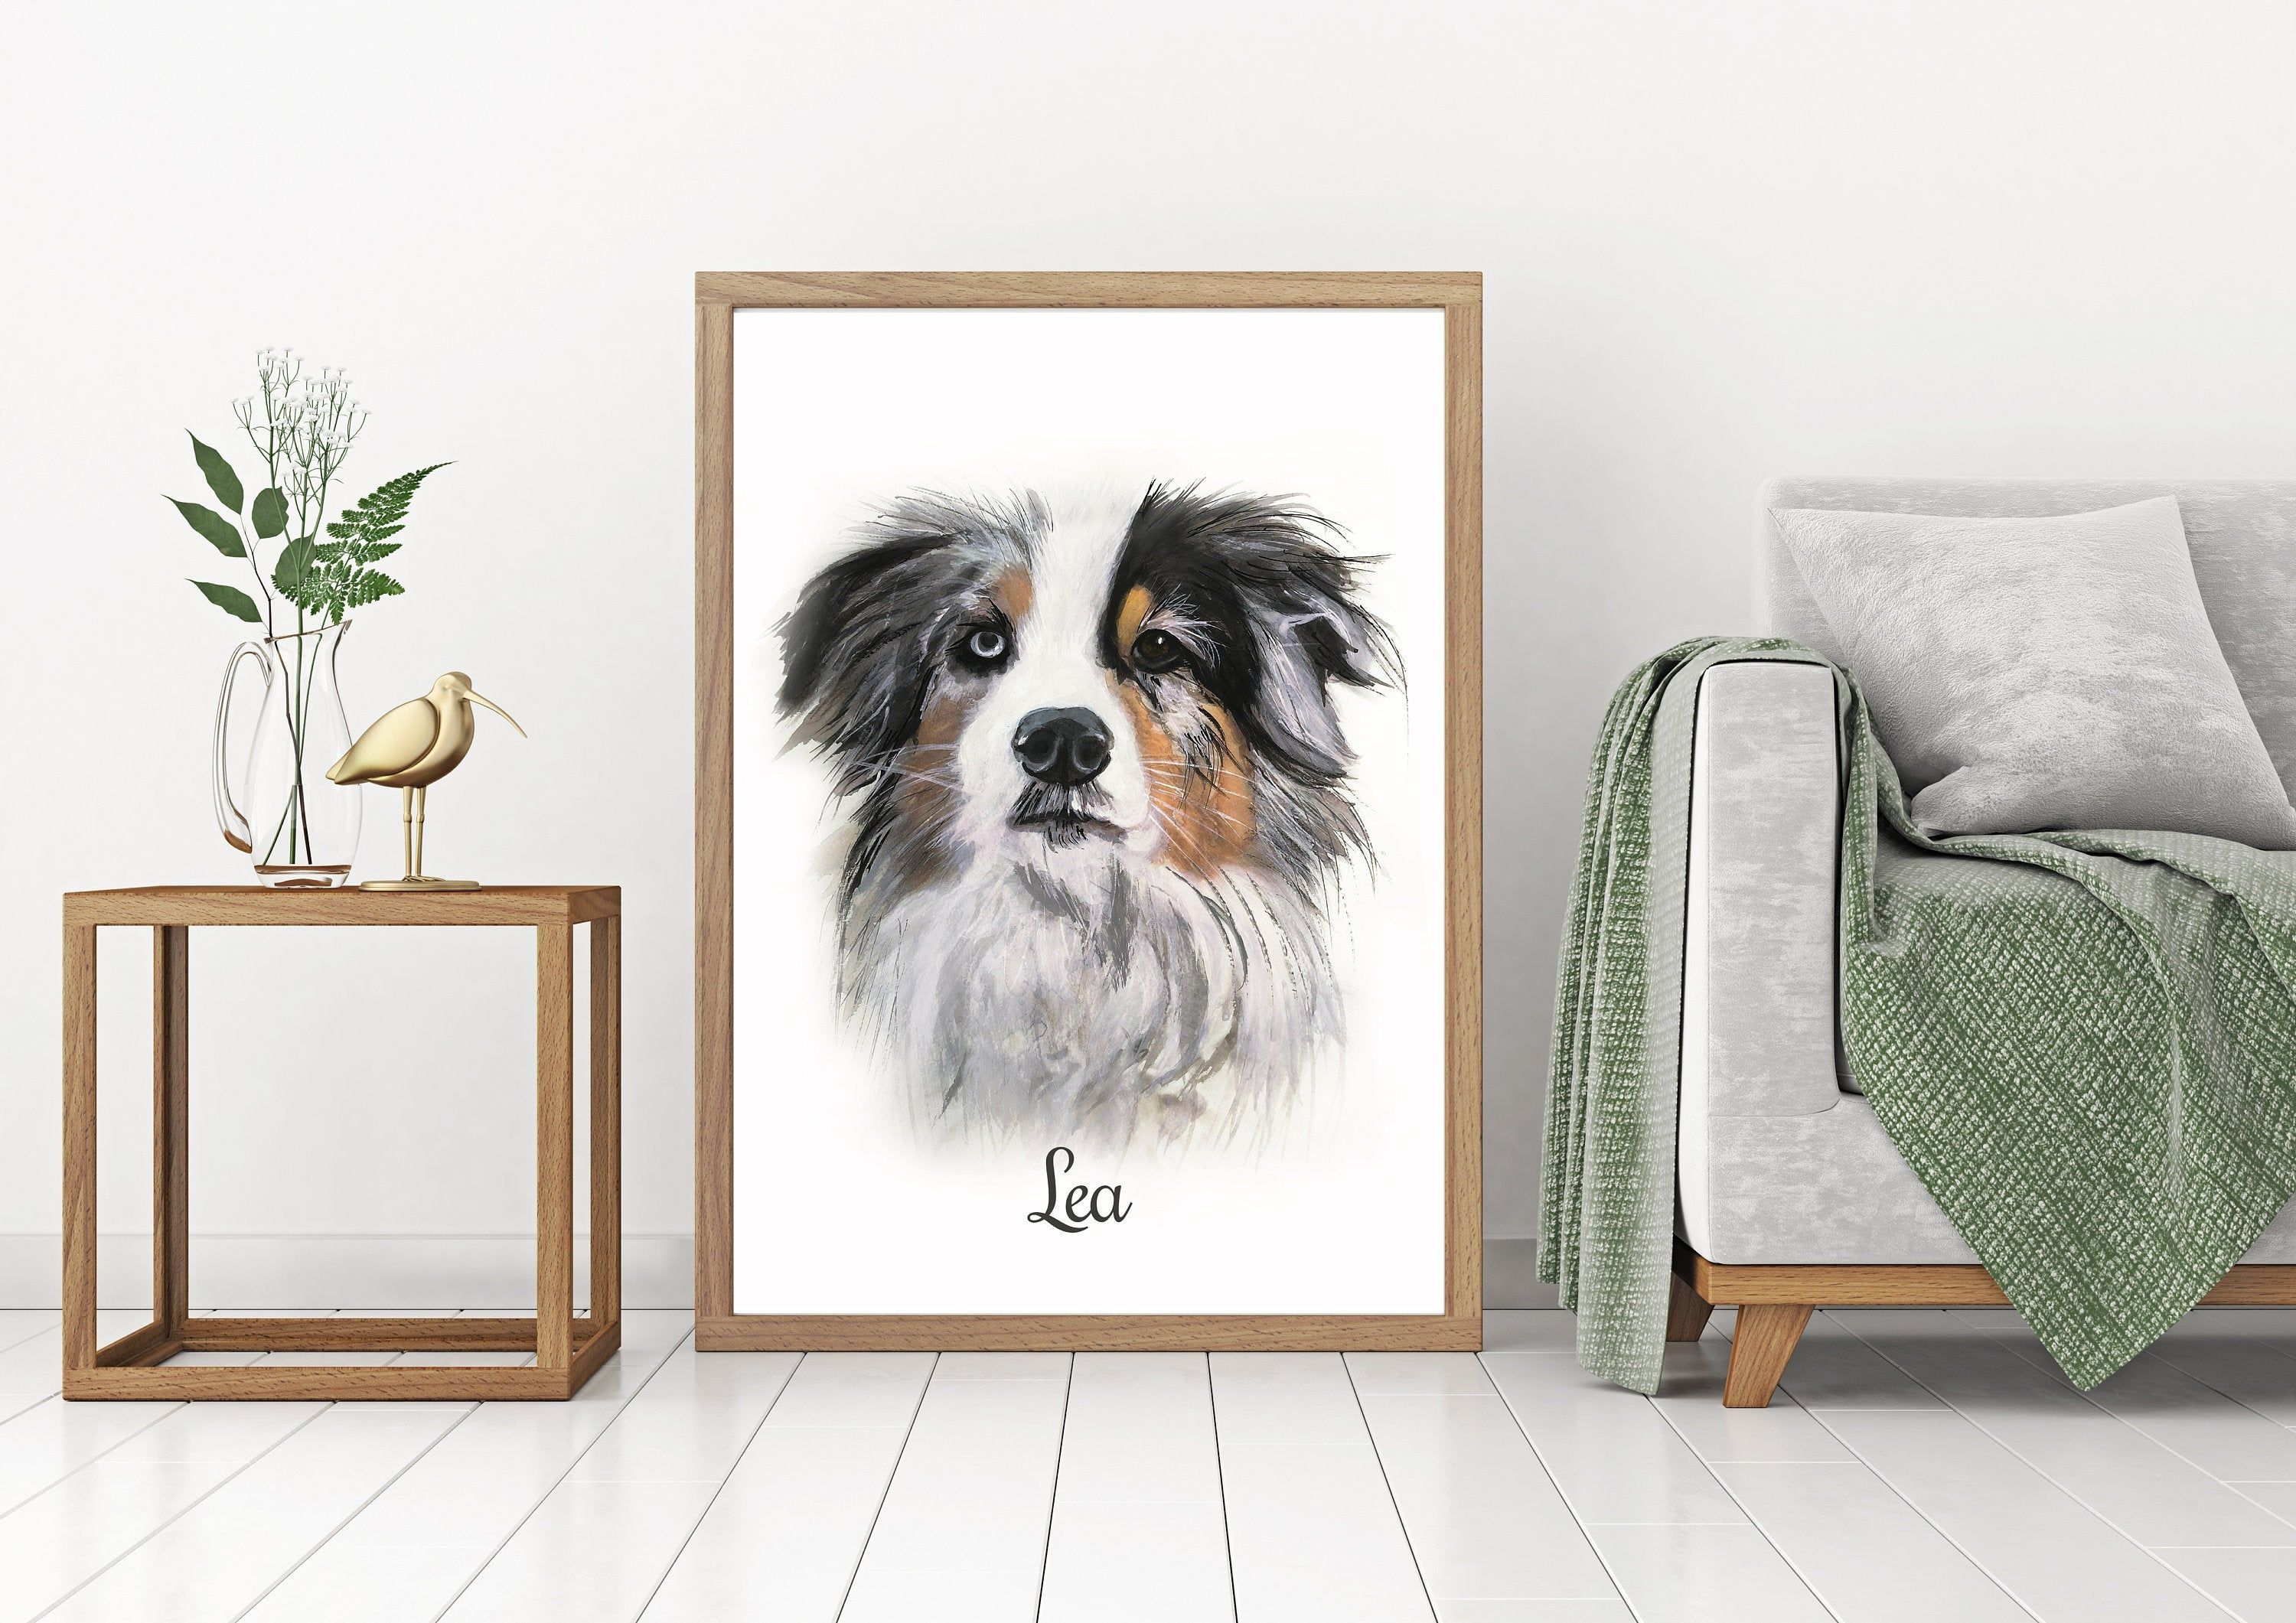 Dog Painting Dog Portrait Watercolor Dog Custom Dog Portrait Handpainted Custom Dog Paint Your Dog Dog Custom Dog Portraits Custom Cat Portrait Watercolor Dog